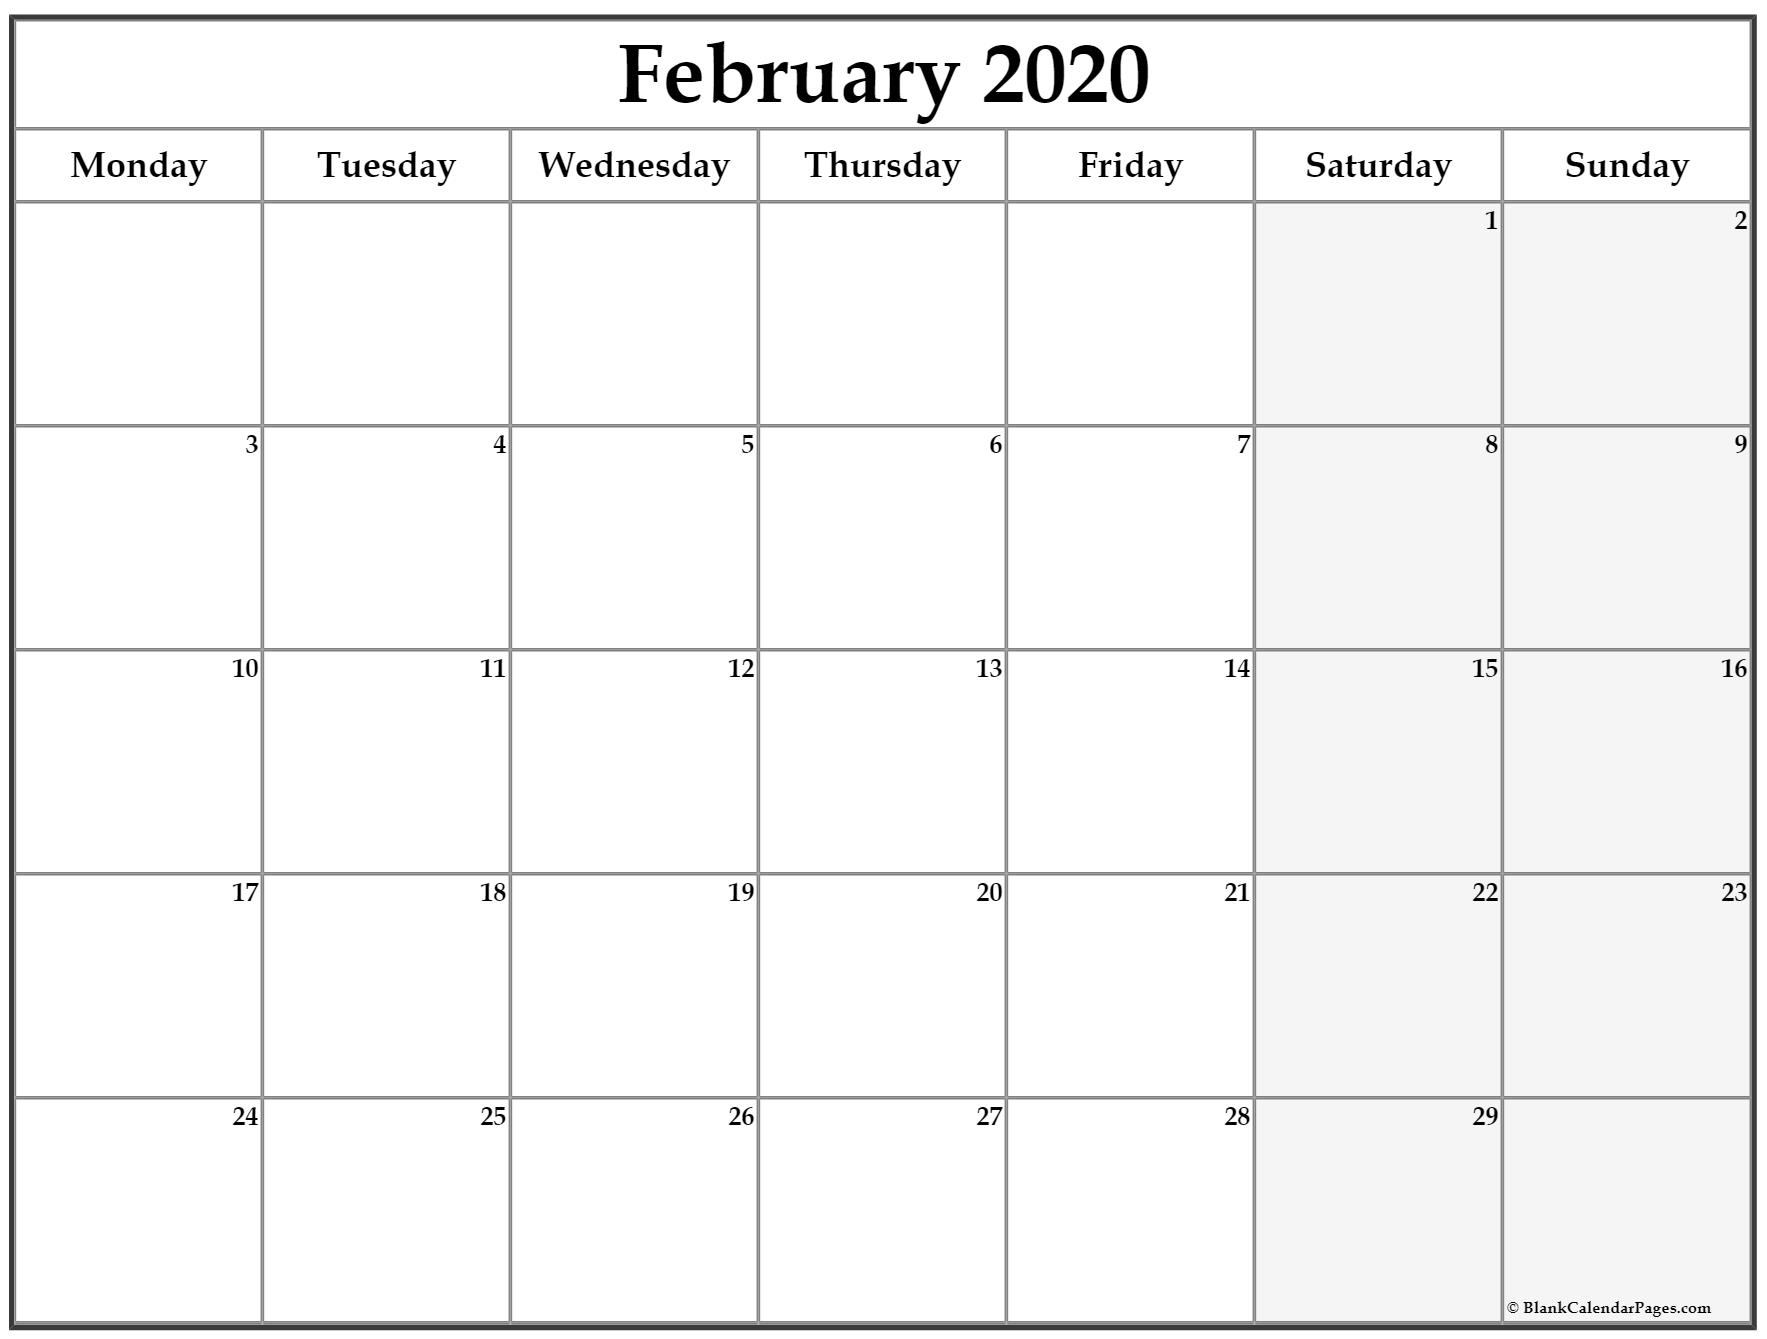 February 2020 Monday Calendar | Monday To Sunday regarding 2020 Calendar Print Mon To Sunday